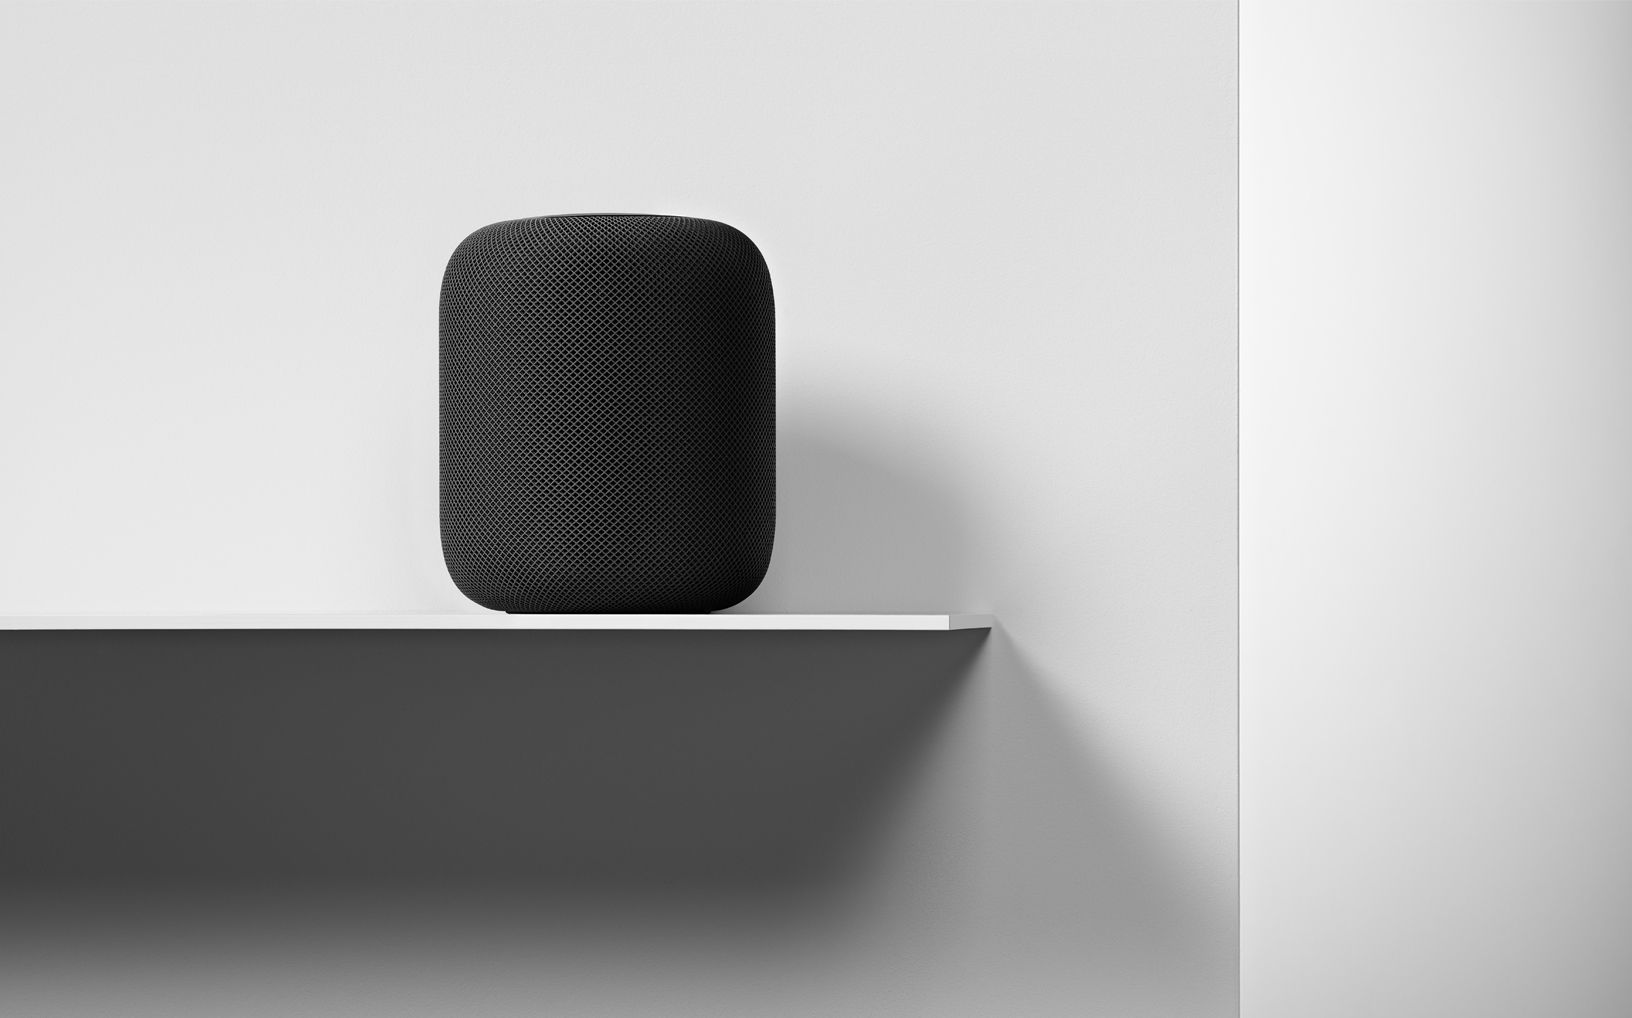 The HomePod looks and sounds great in any decor.